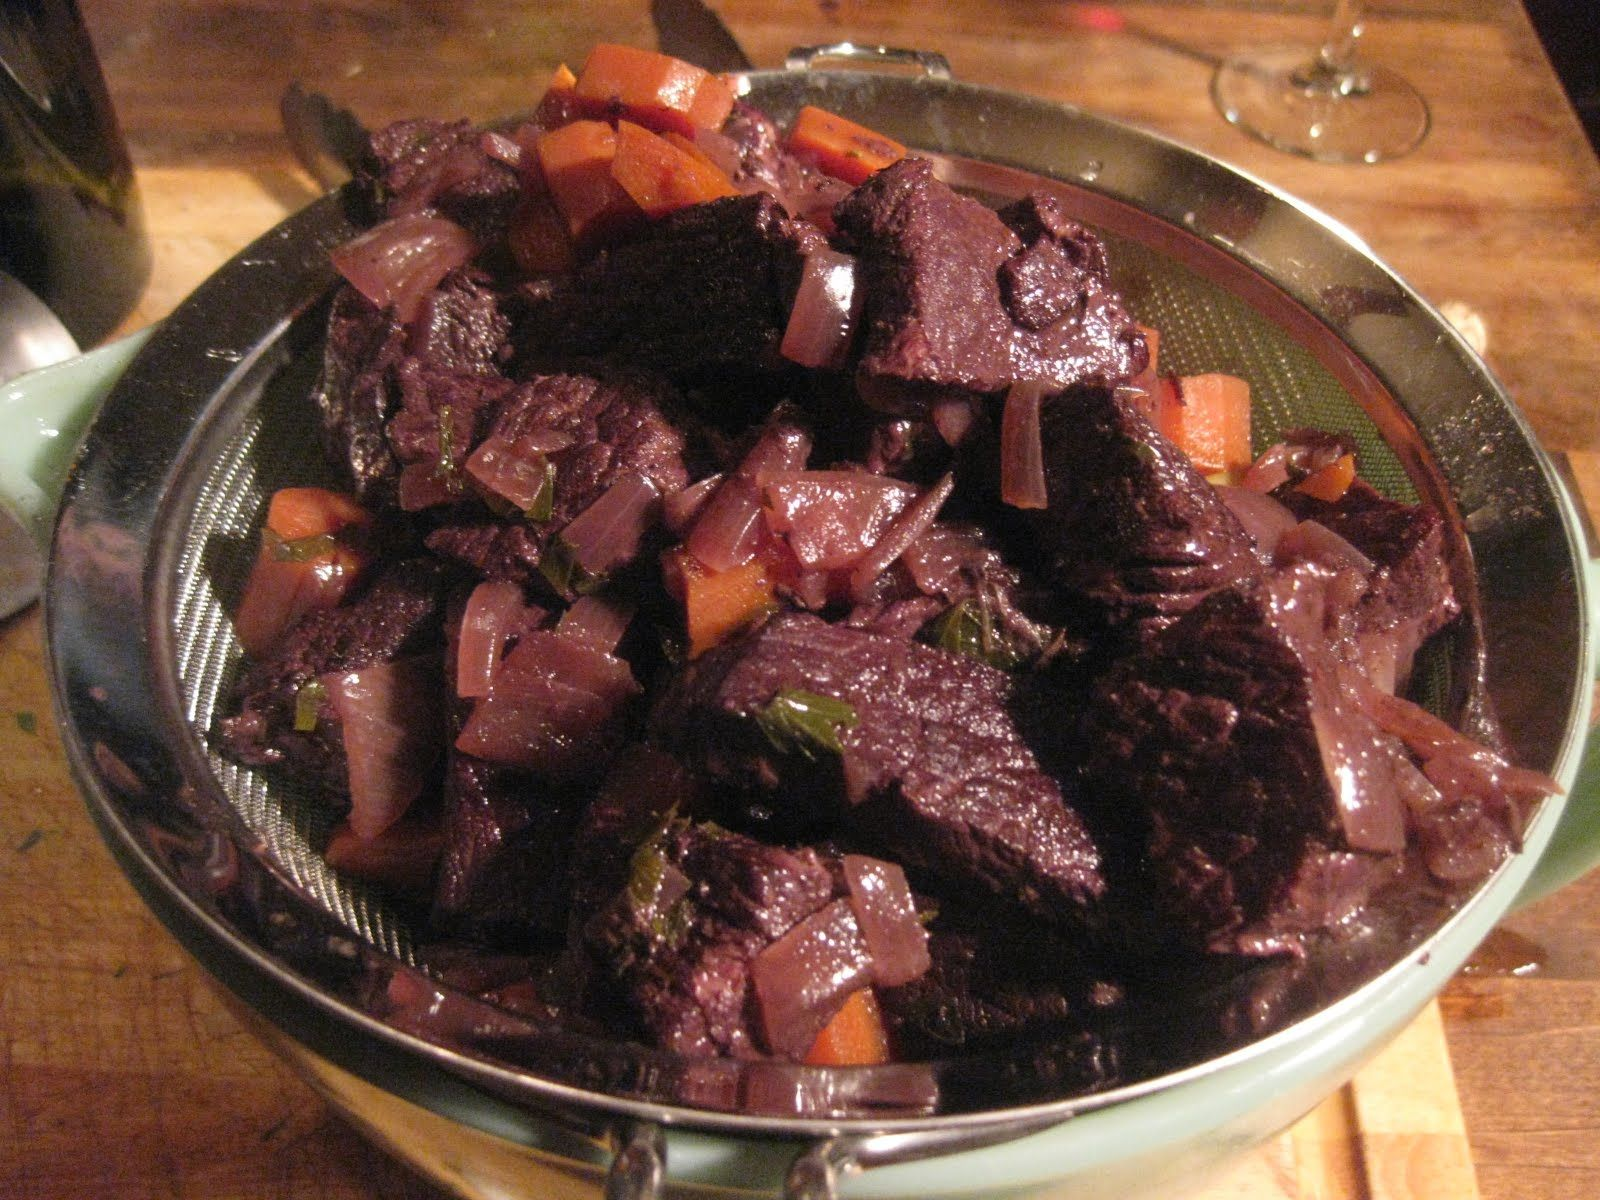 Bacchanalian Beef Stew After Using Some Of The Red Wine In The Stew Pour The Remainder Into A Glass And Enjoy It While The Stew Is Beef Recipes Recipes Beef